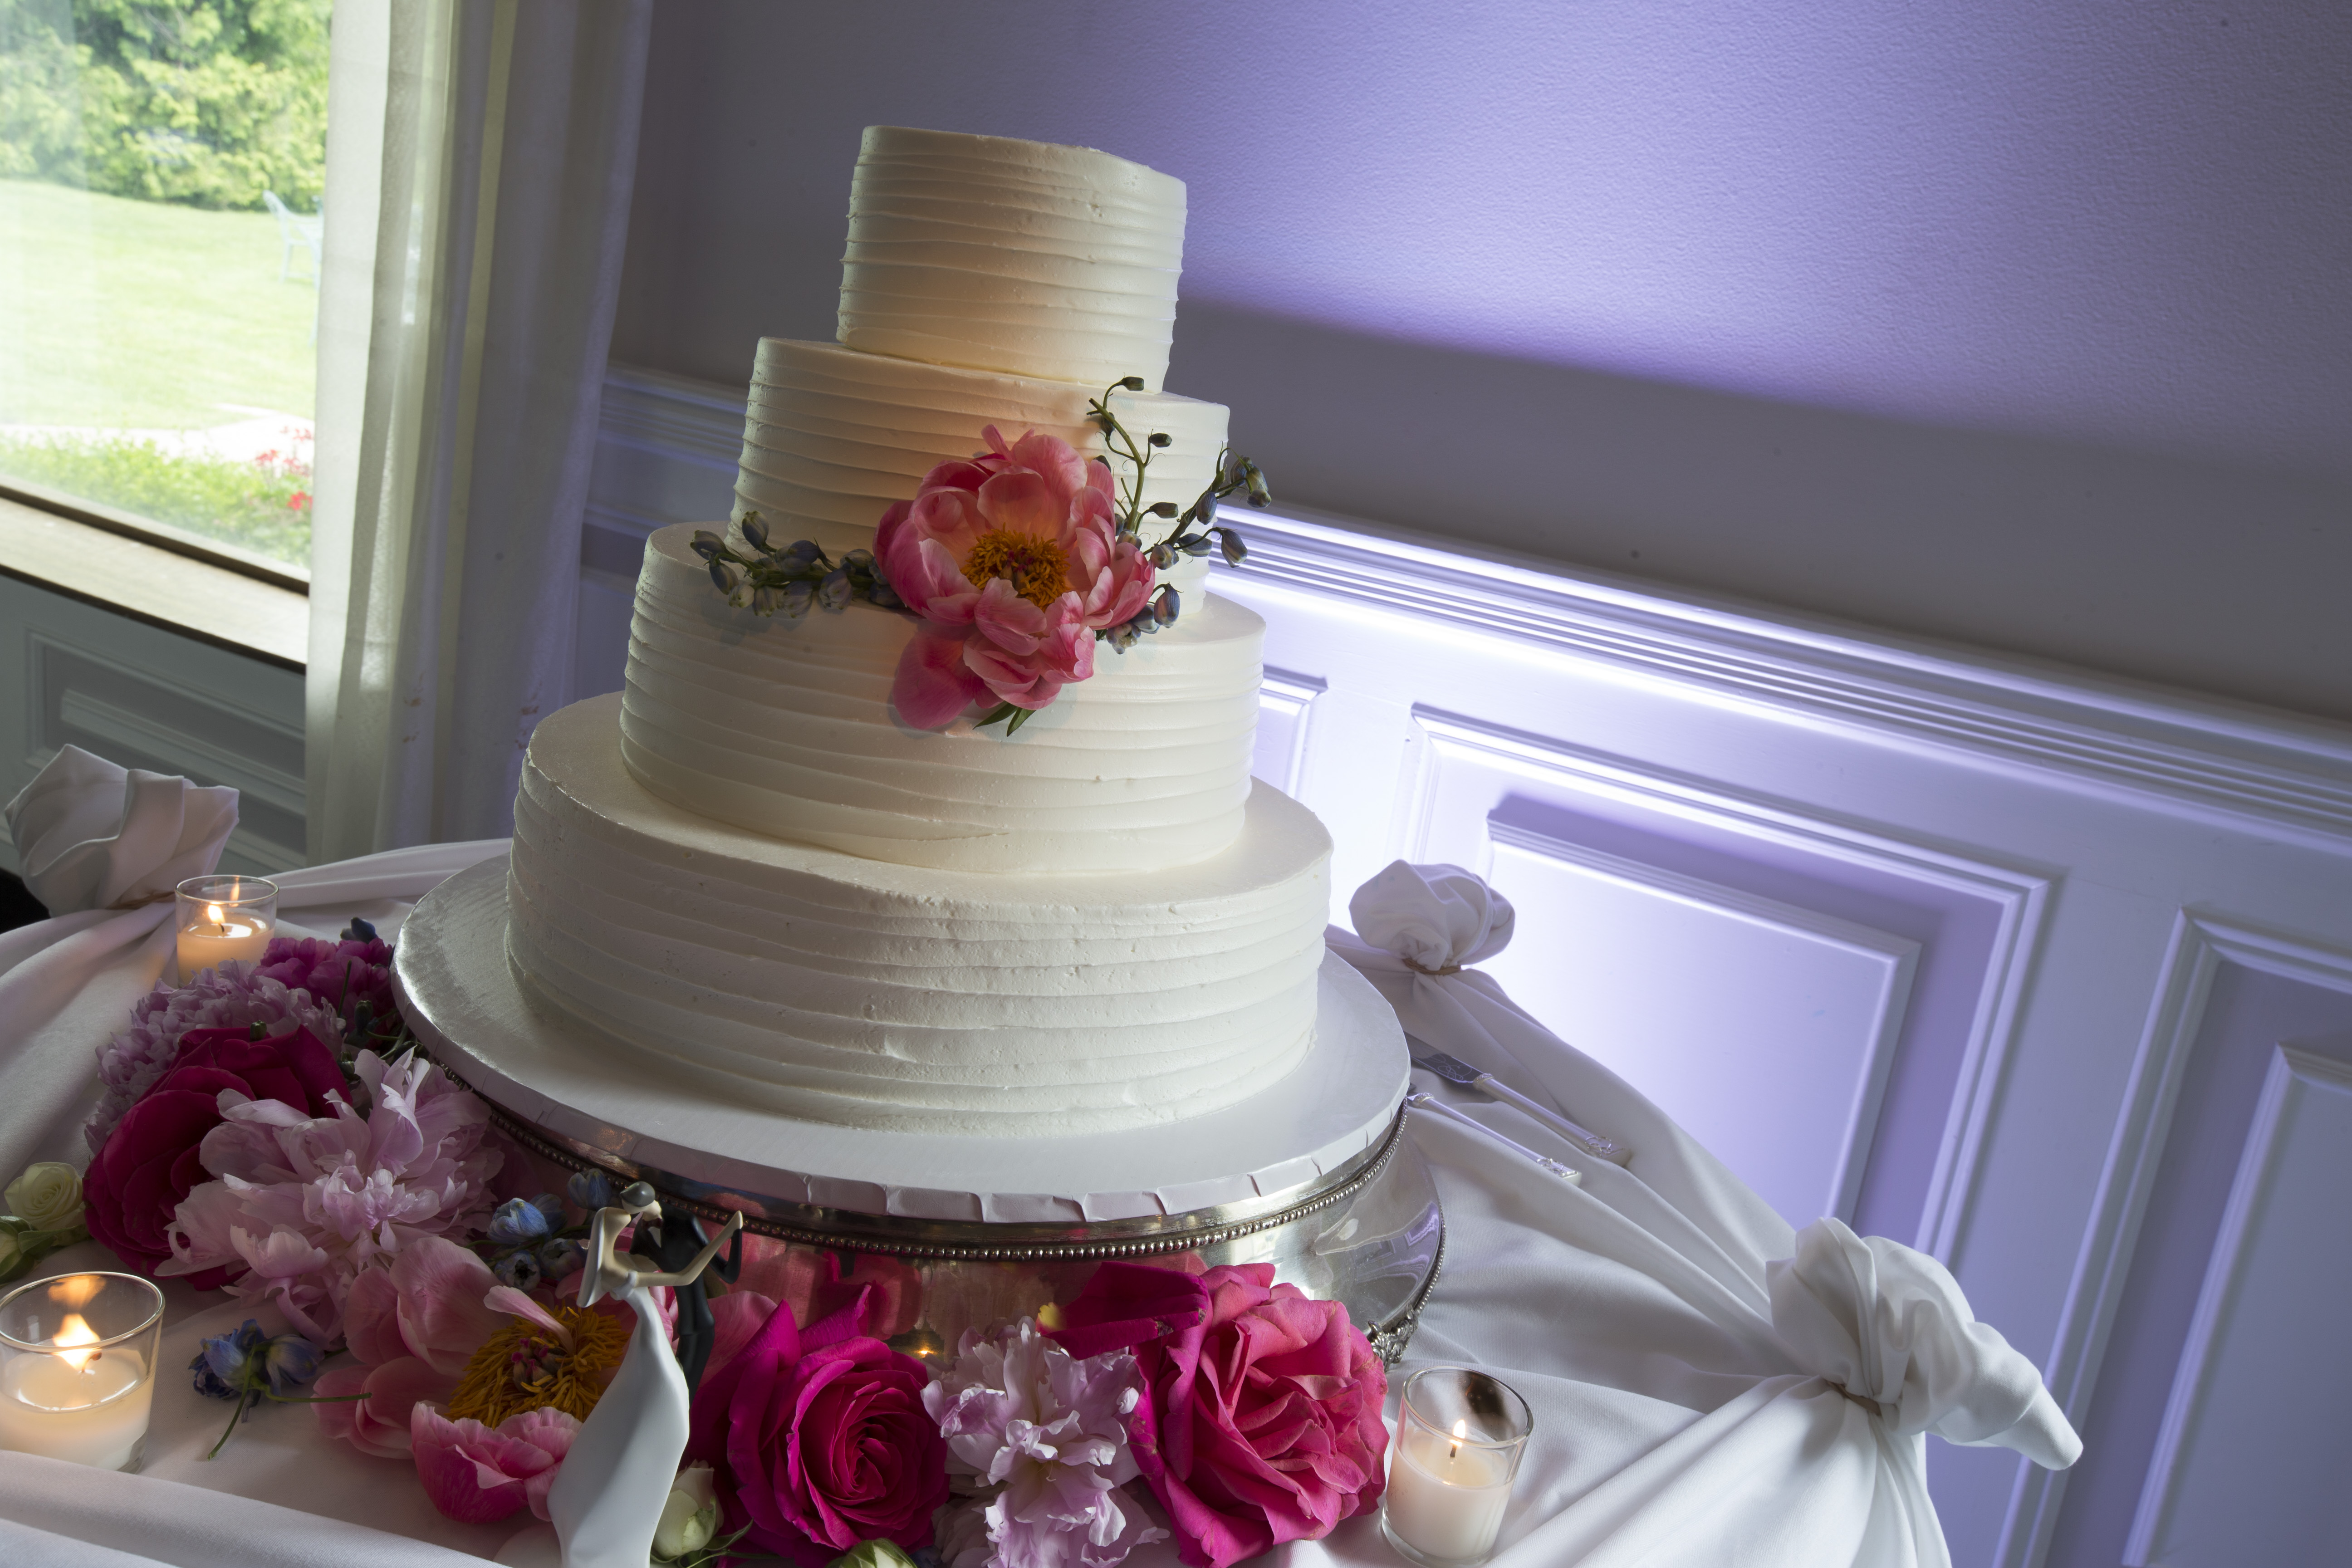 Photo: four tier clean white frosted cake with large pink flower